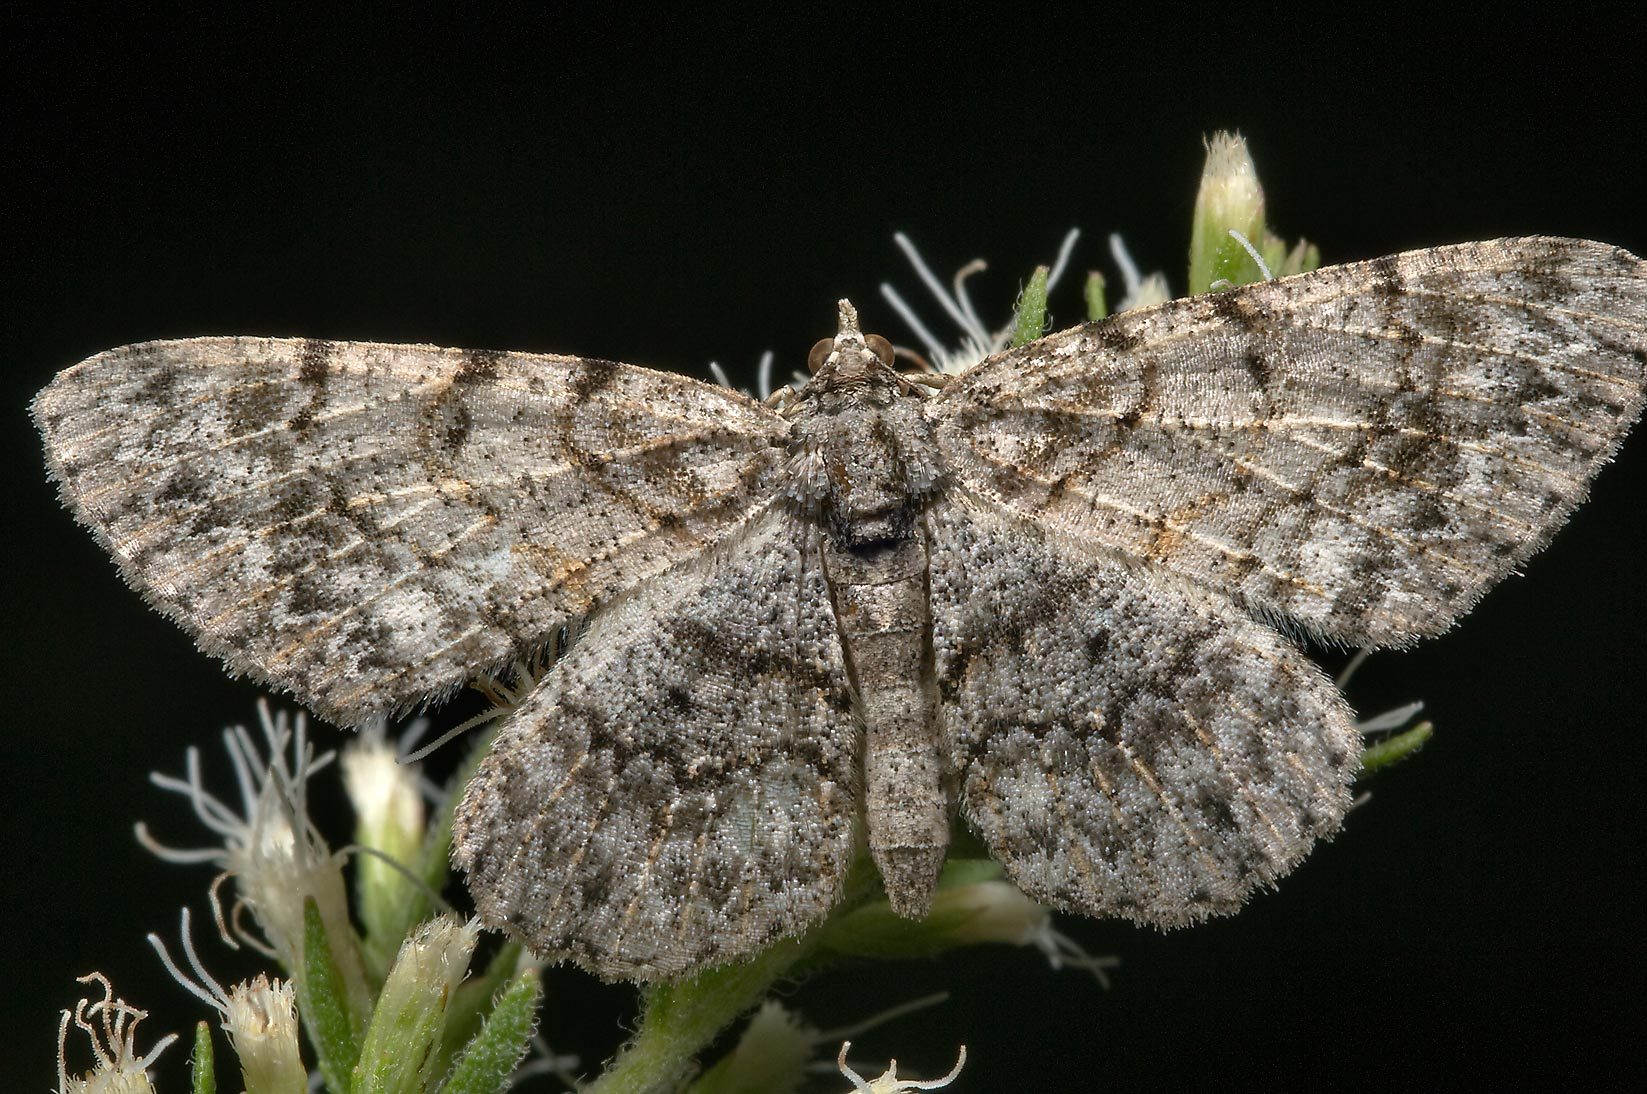 Geometrid moth on yankeeweed in Lick Creek Park. College Station, Texas